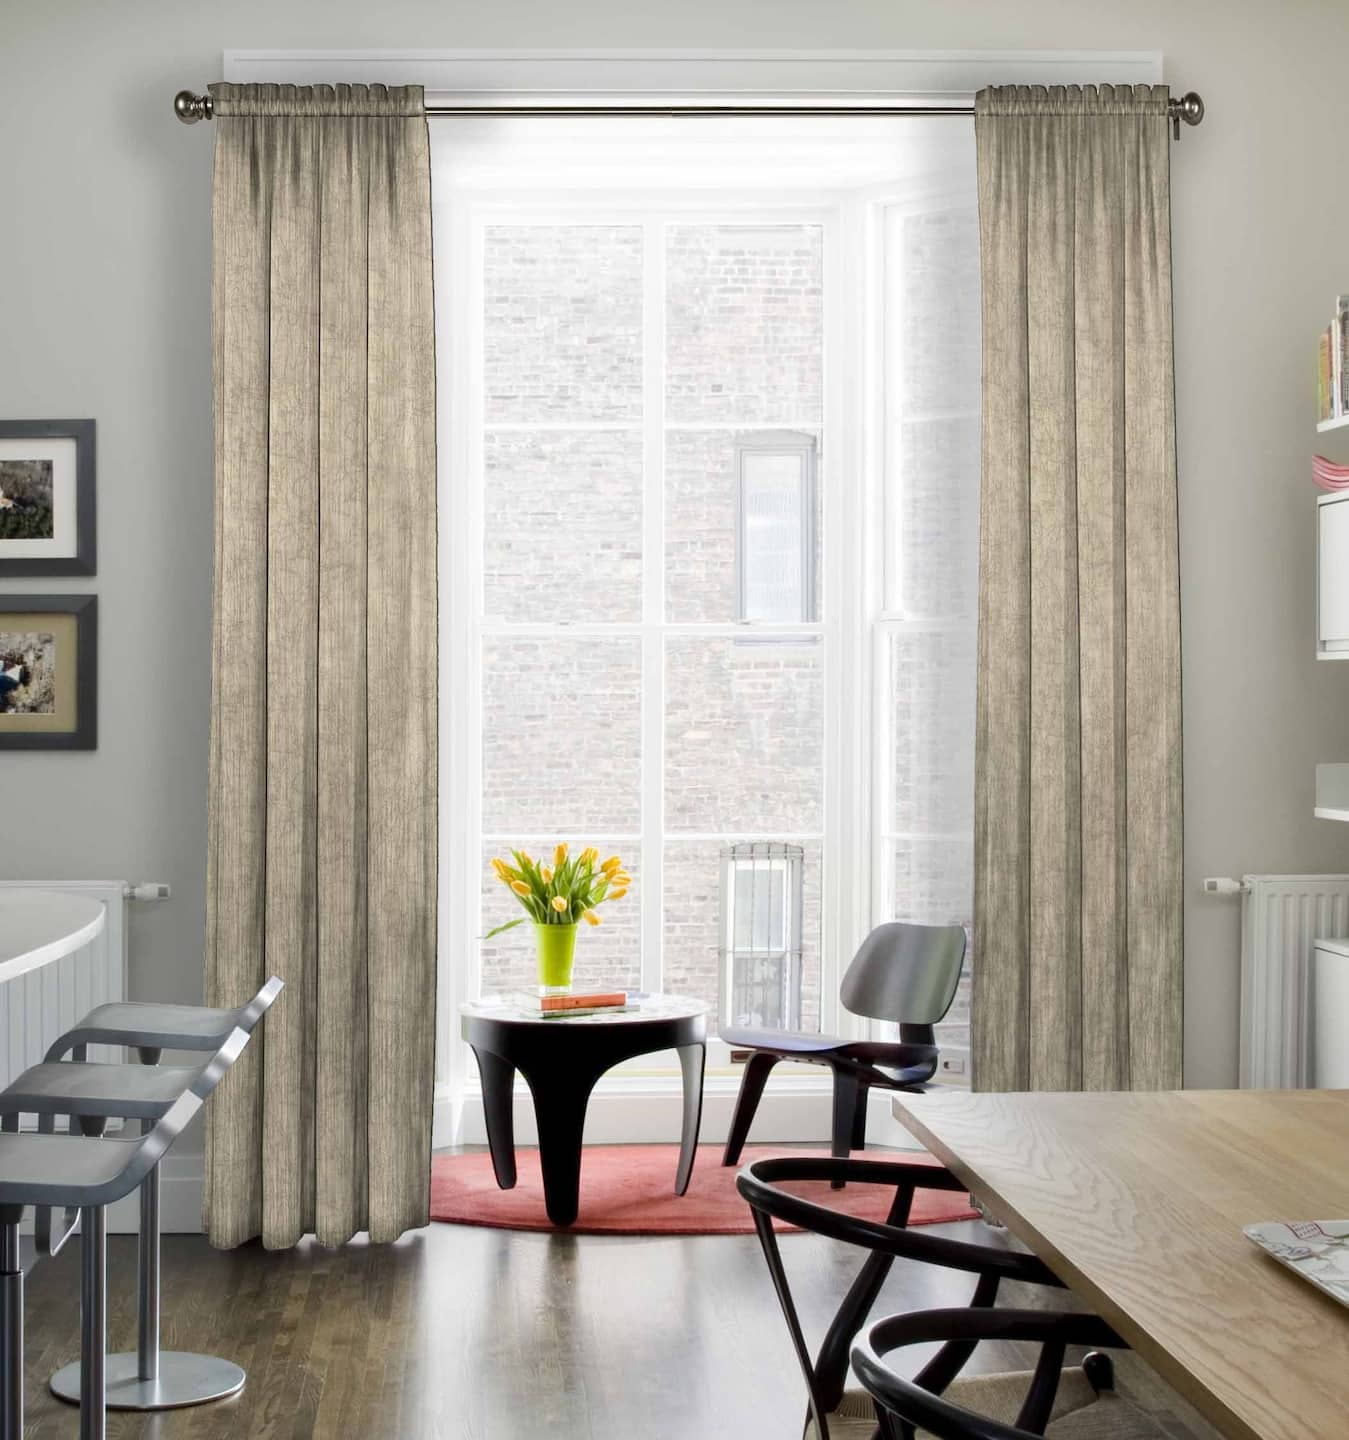 Dining Room Window: 15 Dining Room Curtains Ideas